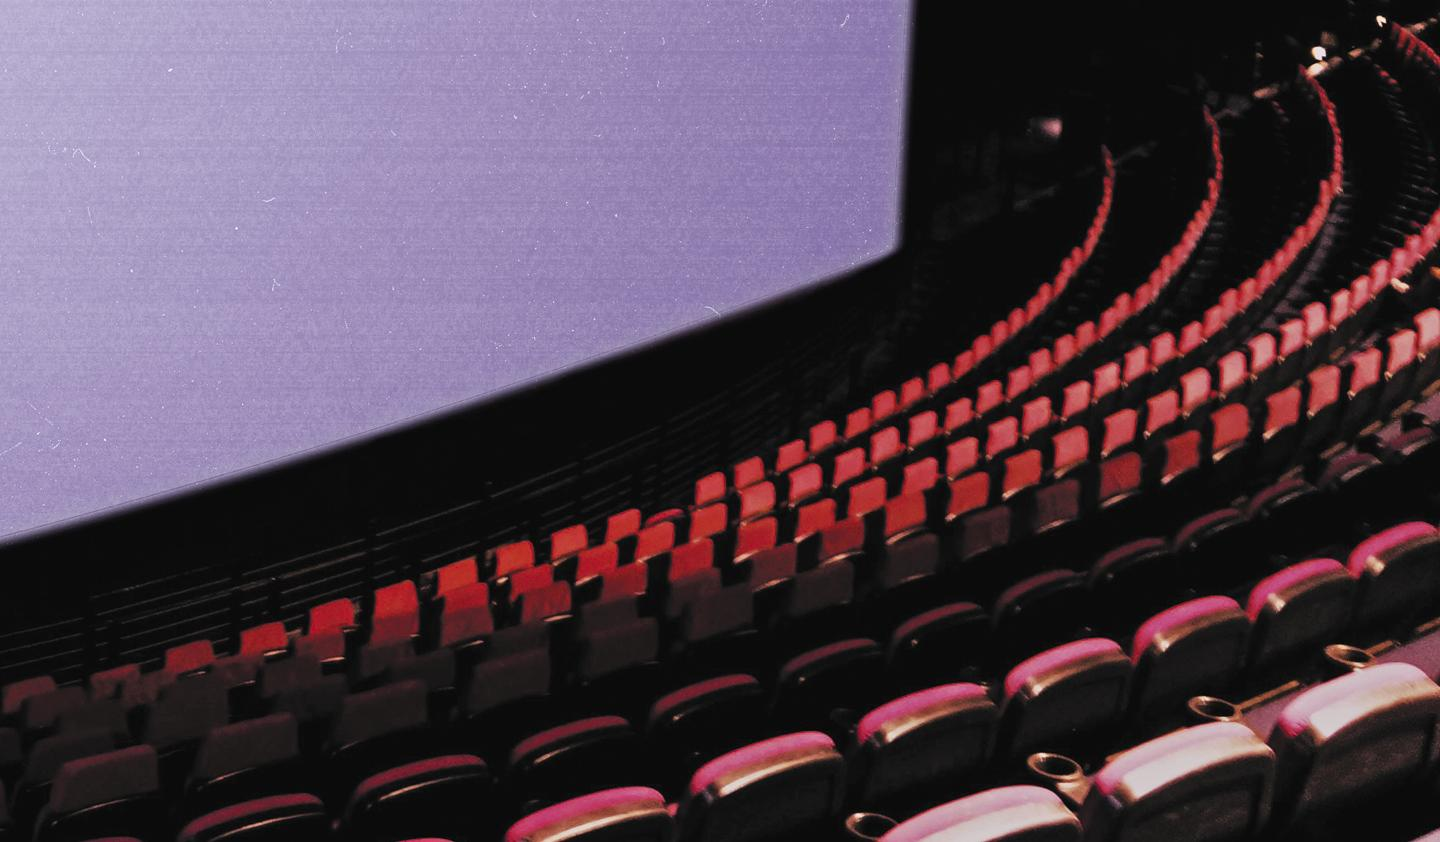 Cinema seating and screen